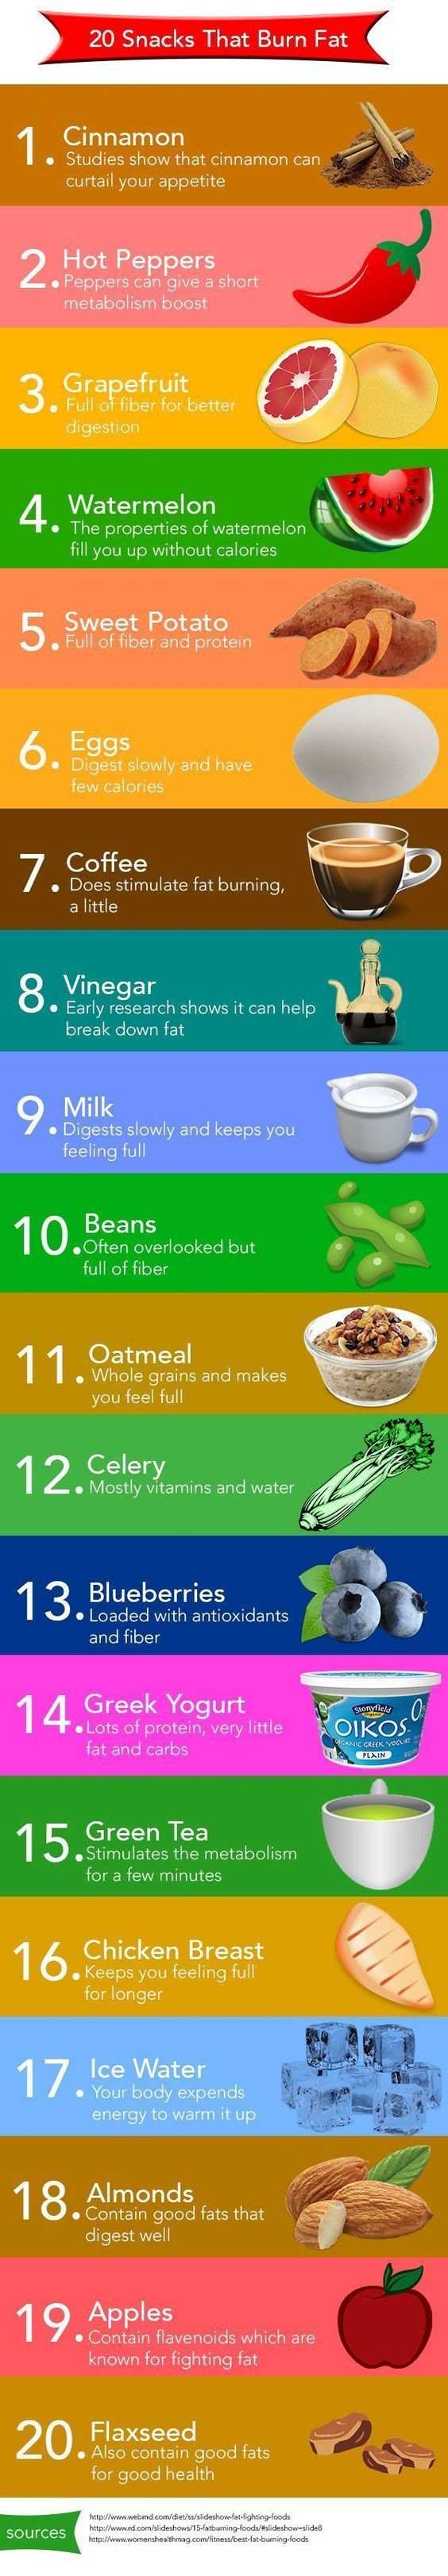 Slimming Tips Blog is a complete weight loss blog, All the content there written based on some true practical slimming experience. Please visit our blog and don't forget to share with your friends. Because sharing is caring. n#slimmingtips #weightlossblog #weightlosstips nhttps://www.facebook.com/SlimmingTipsBlogn: